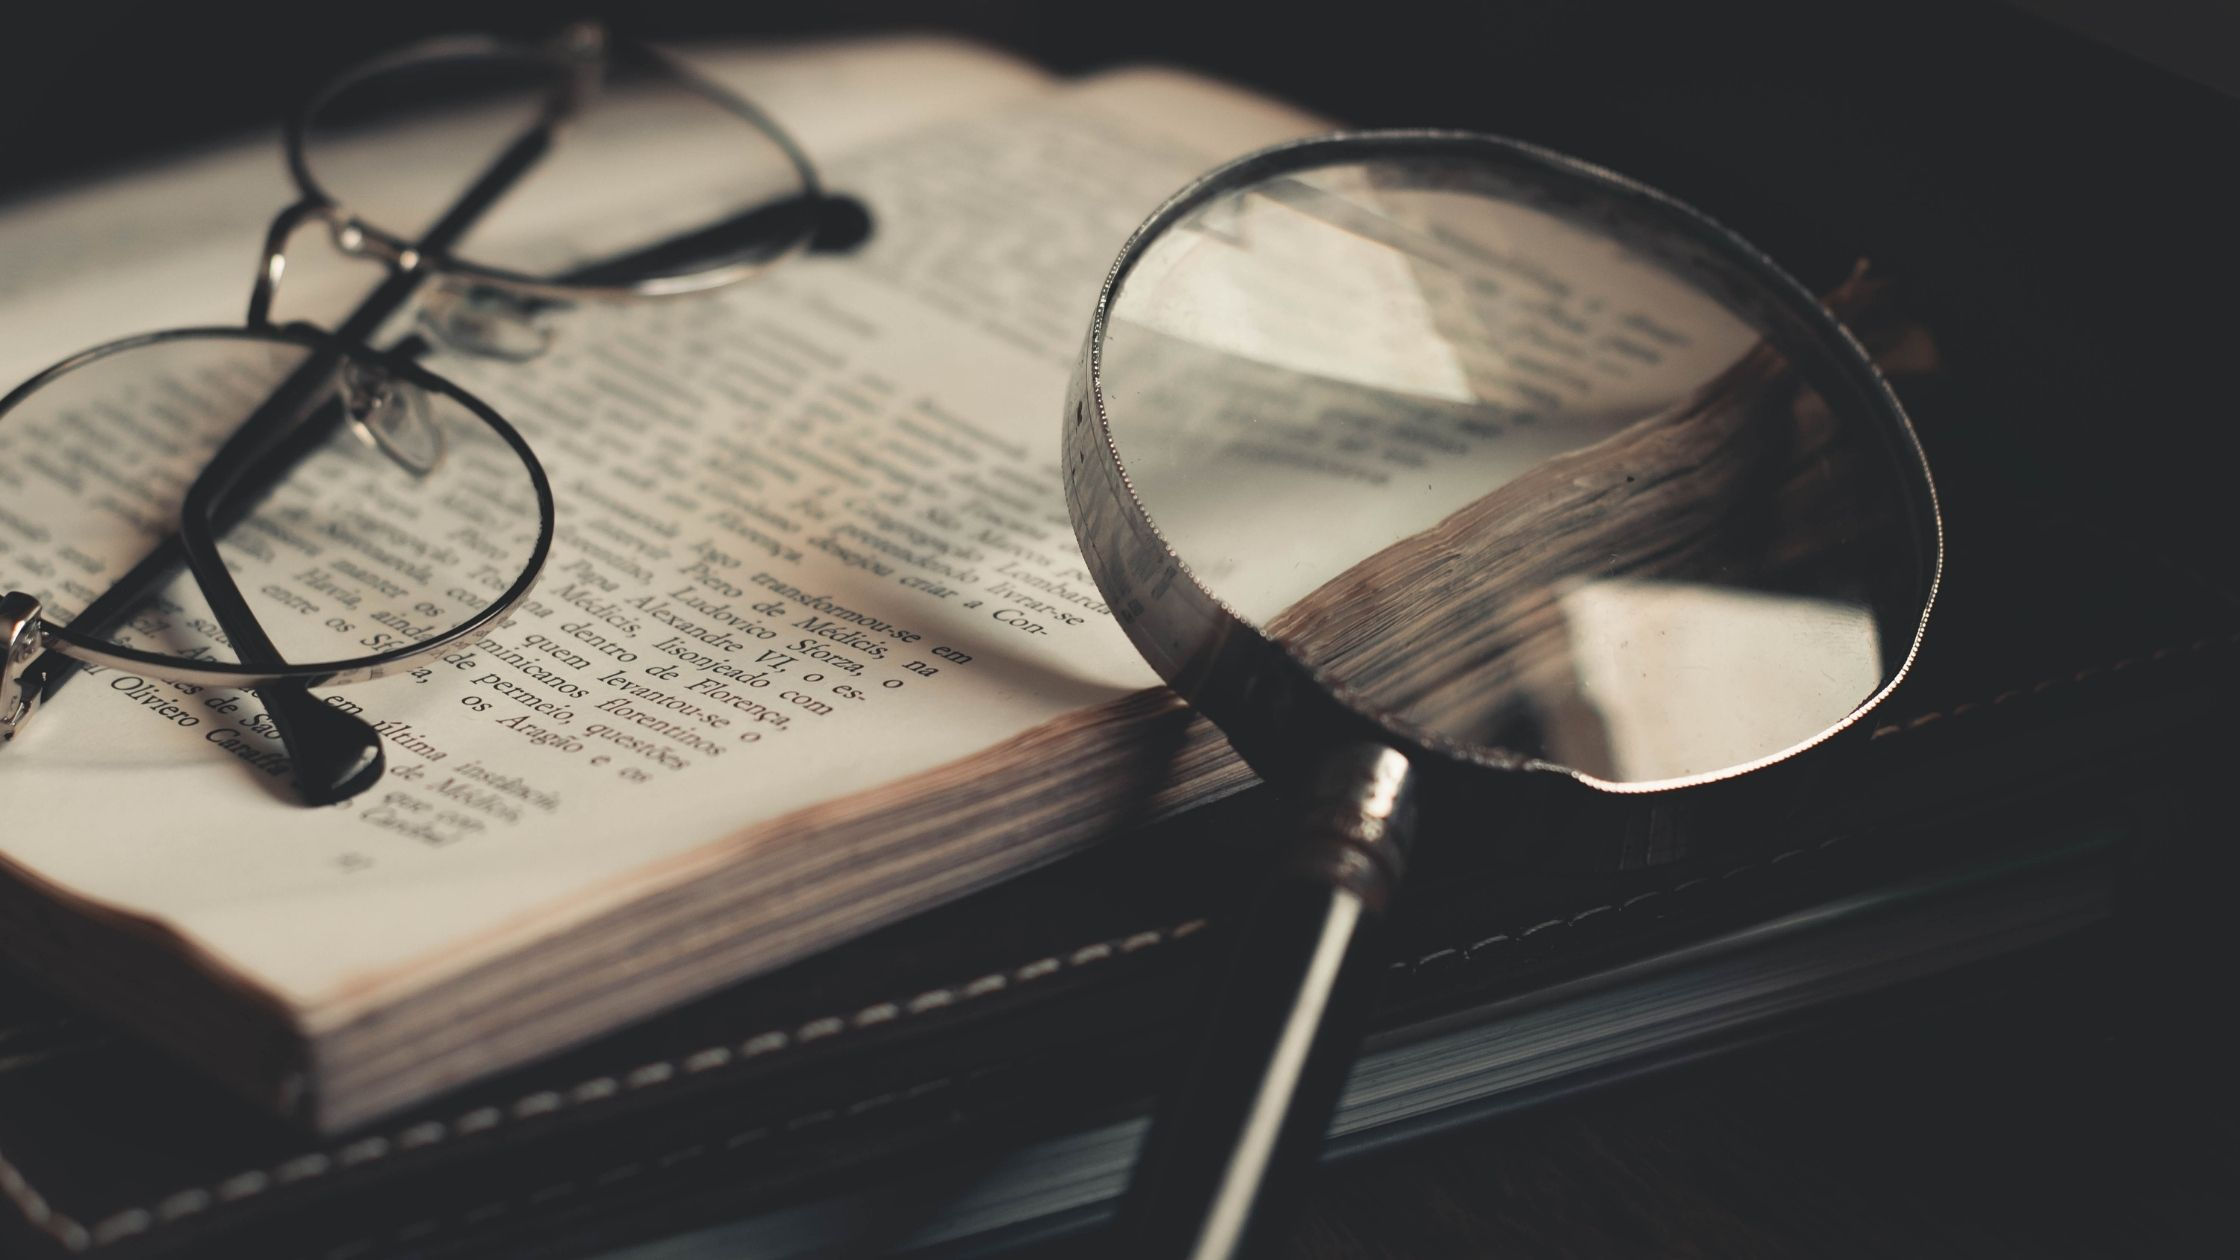 An open book, a pair of glasses and a magnifying glass can be seen kept together.